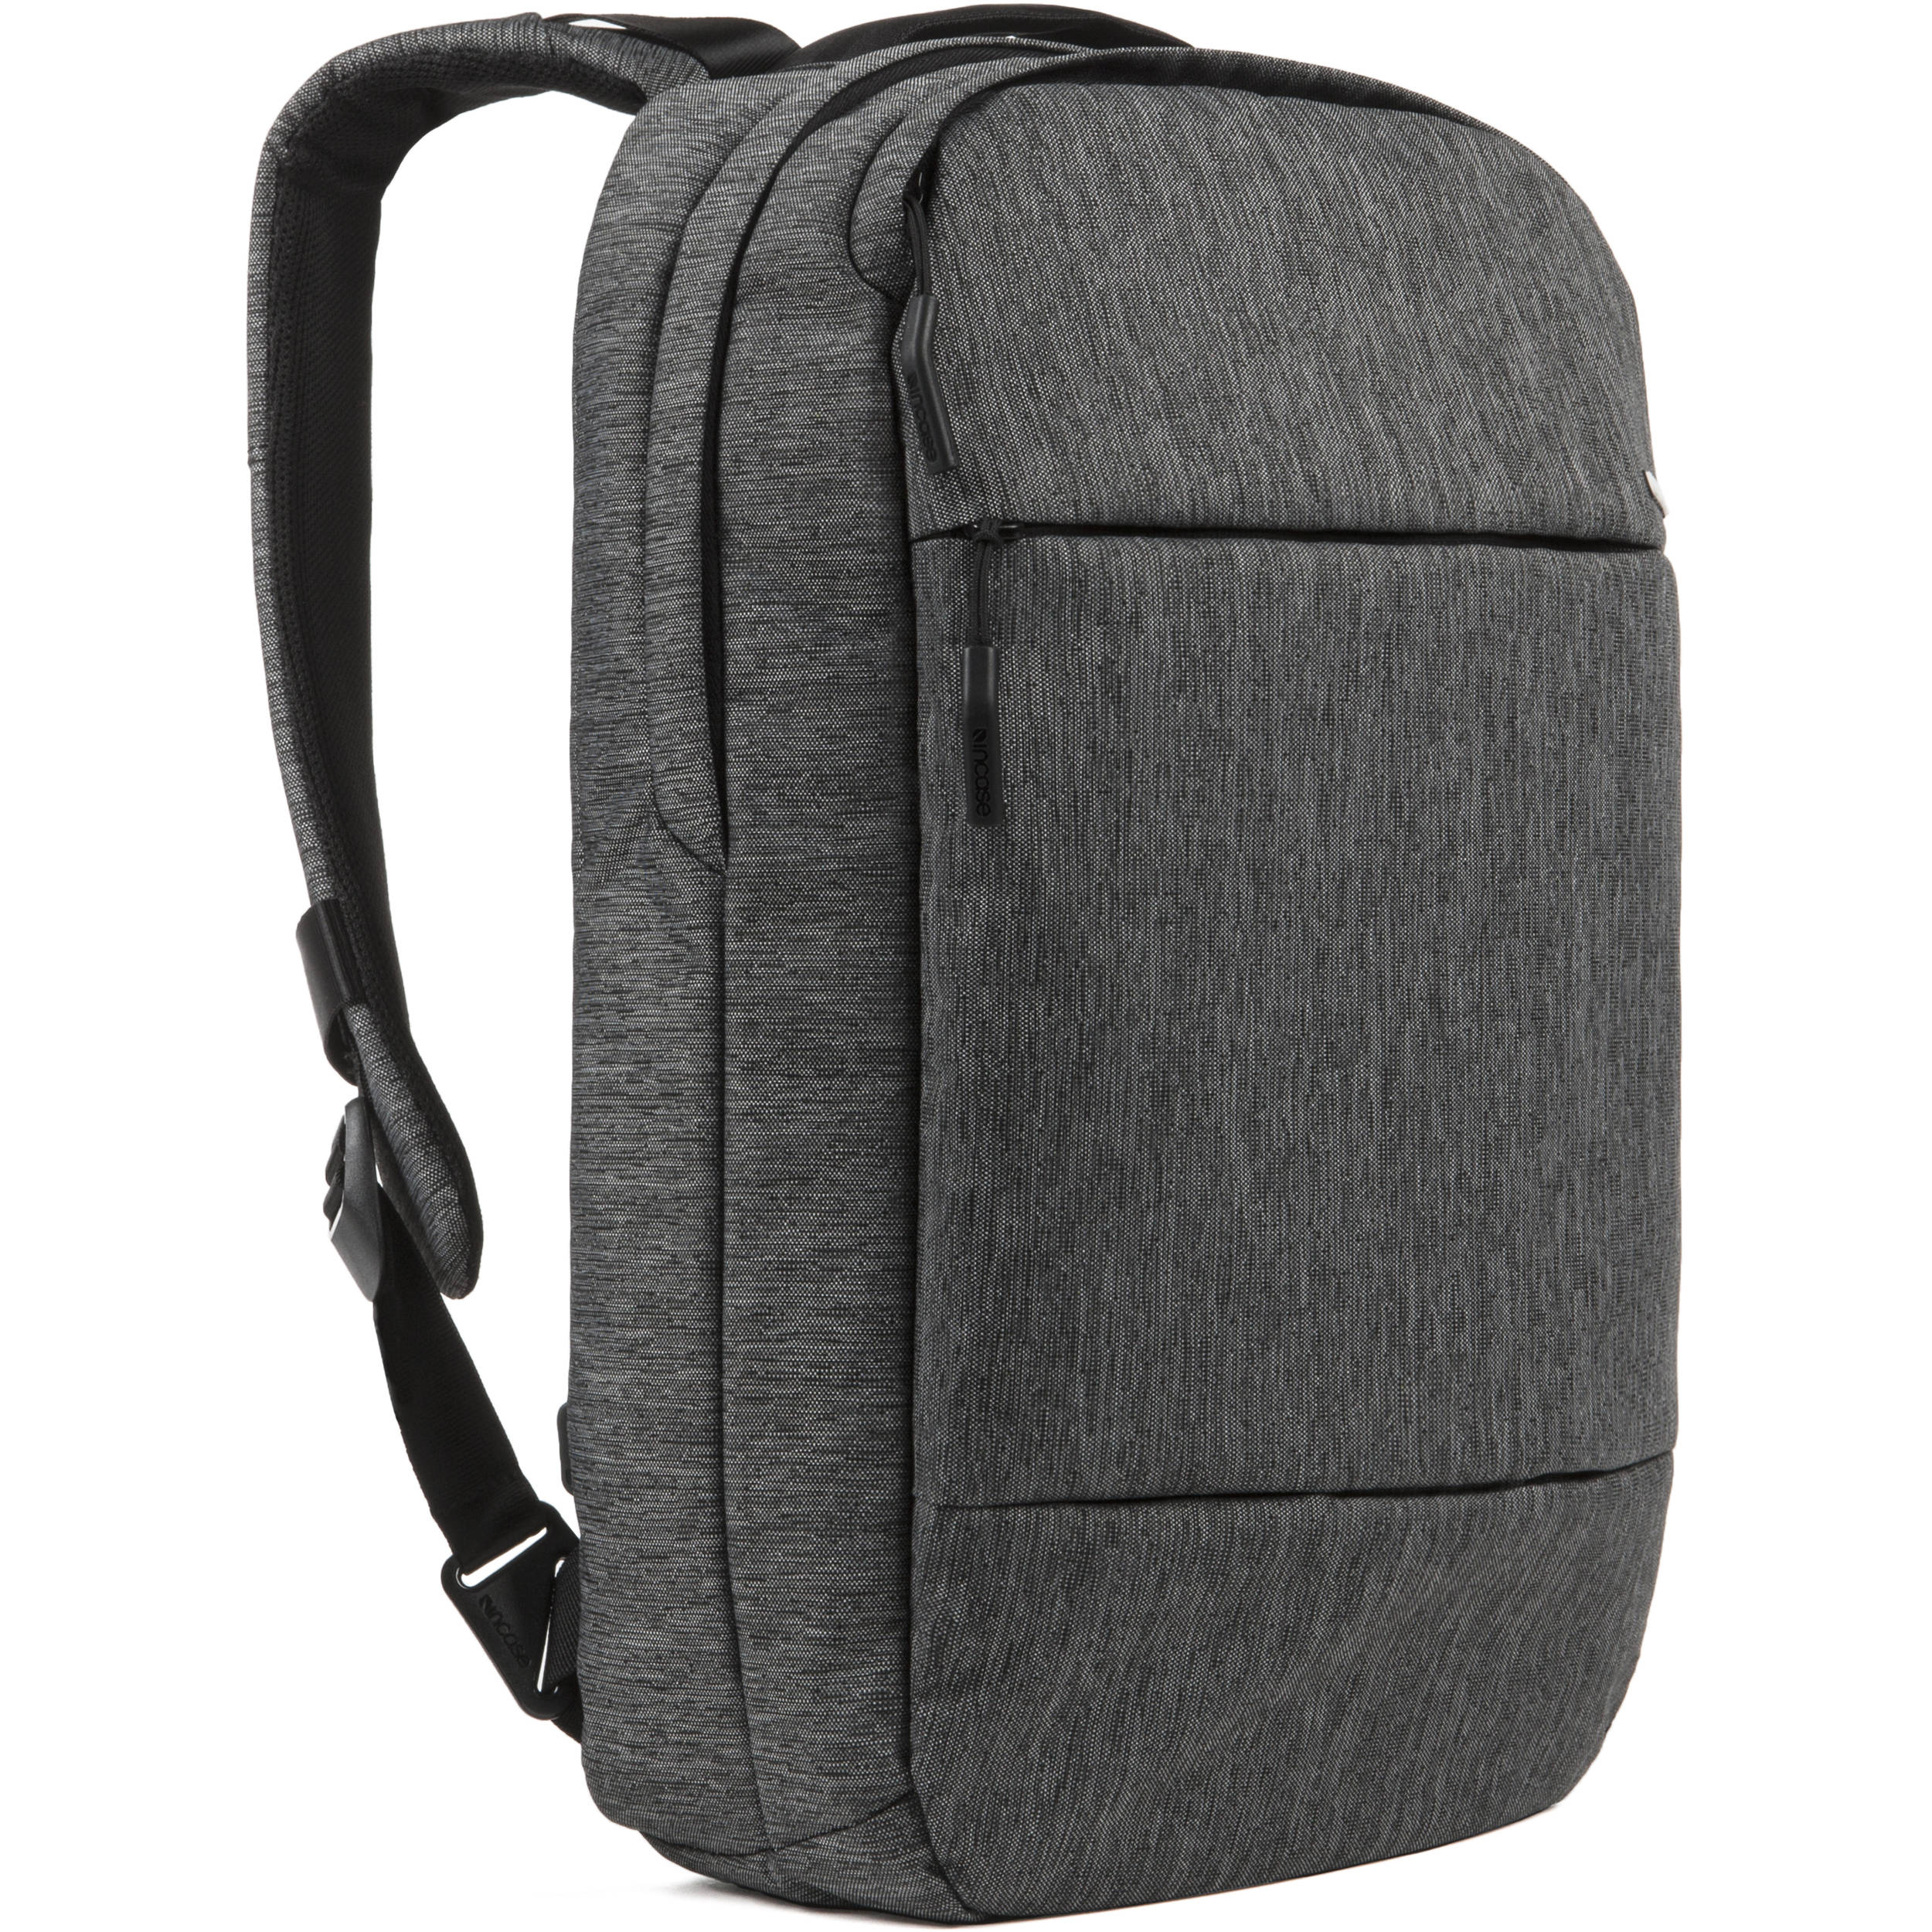 a138acb052a7 Incase Designs Corp City Compact Backpack for 15